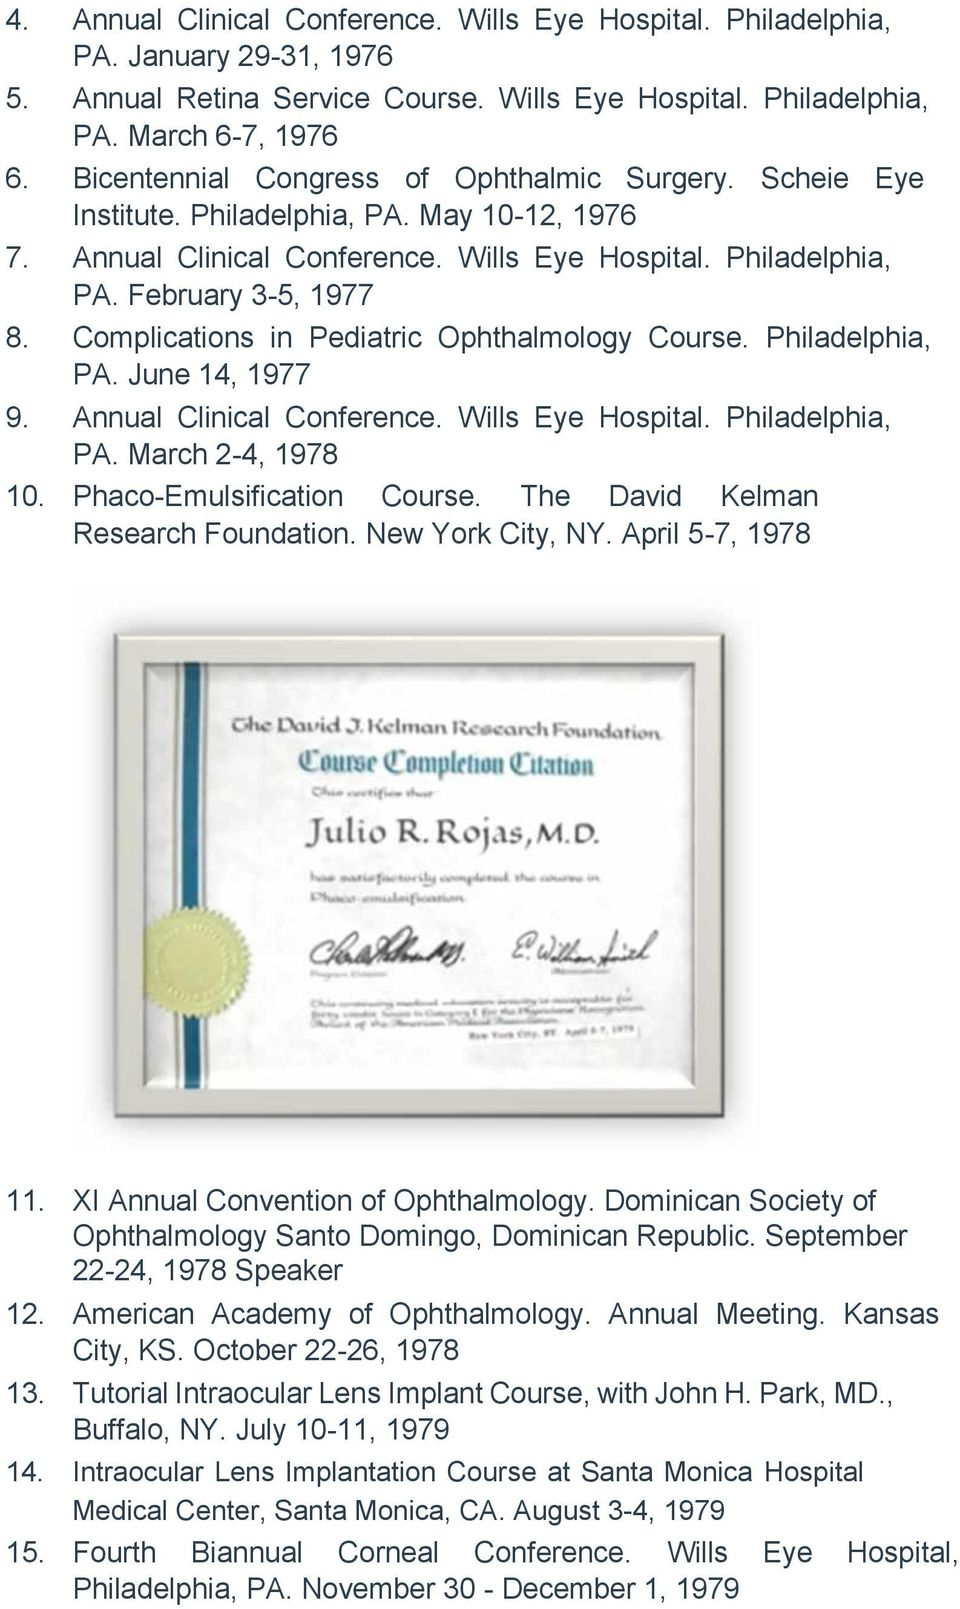 Complications in Pediatric Ophthalmology Course. Philadelphia, PA. June 14, 1977 9. Annual Clinical Conference. Wills Eye Hospital. Philadelphia, PA. March 2-4, 1978 10. Phaco-Emulsification Course.